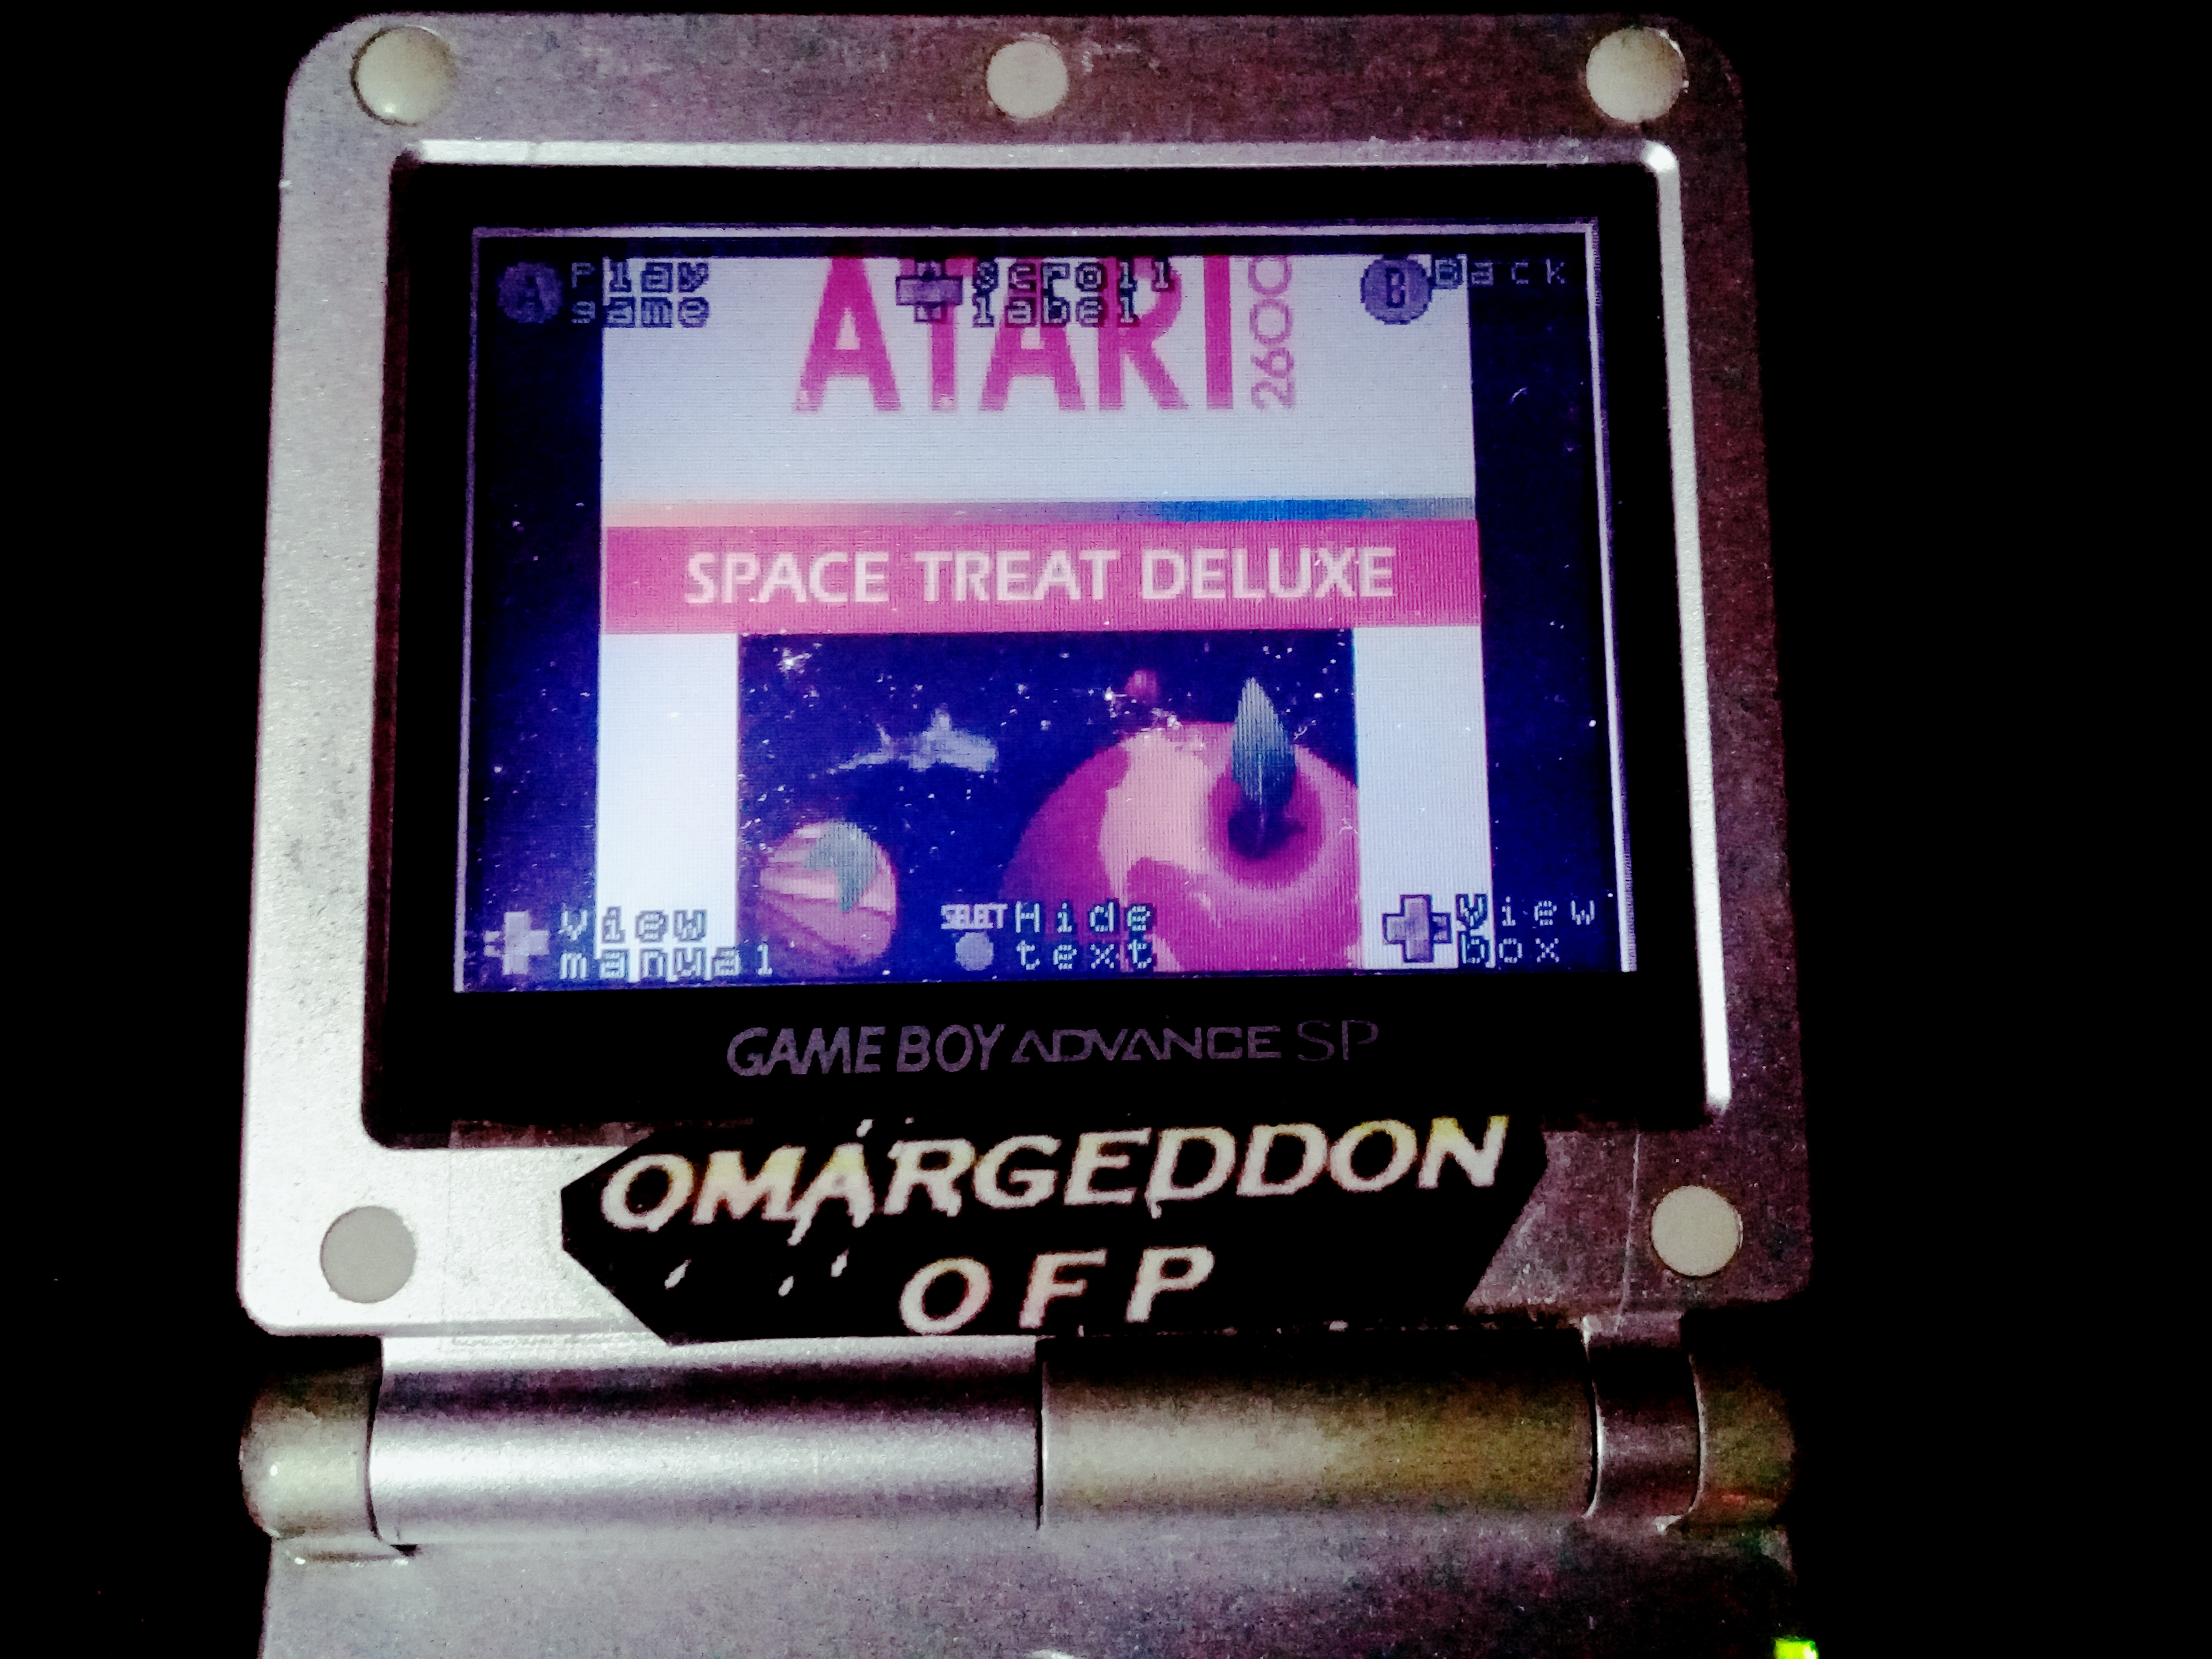 omargeddon: Activision Anthology: Space Treat Deluxe (GBA) 24,340 points on 2019-12-03 11:20:24